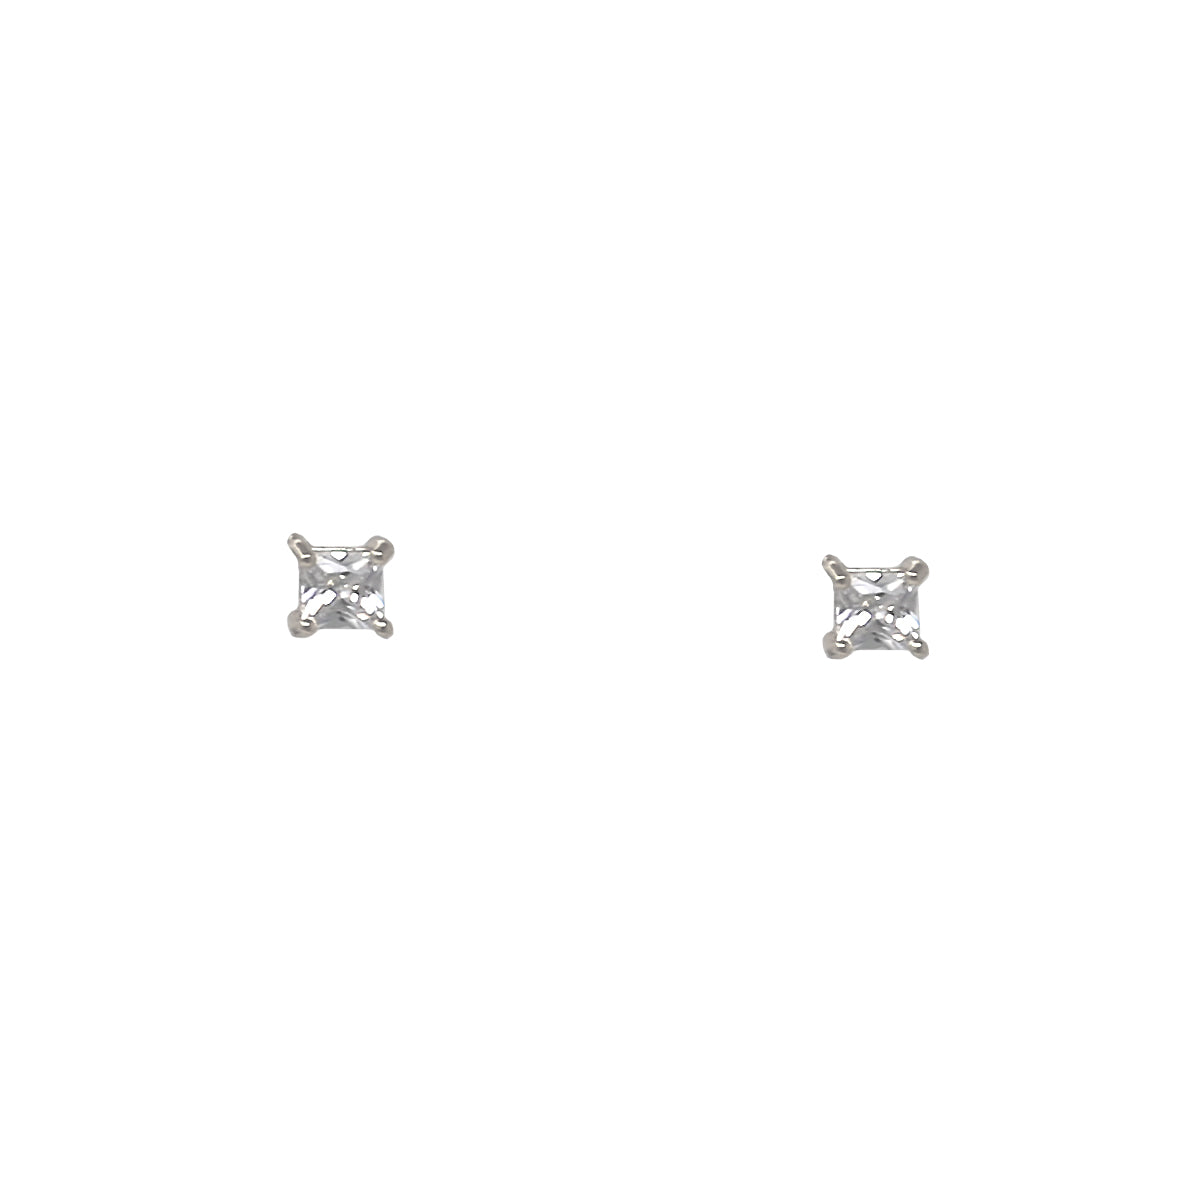 Square Cubic Zirconia Stud Earrings (4 mm)